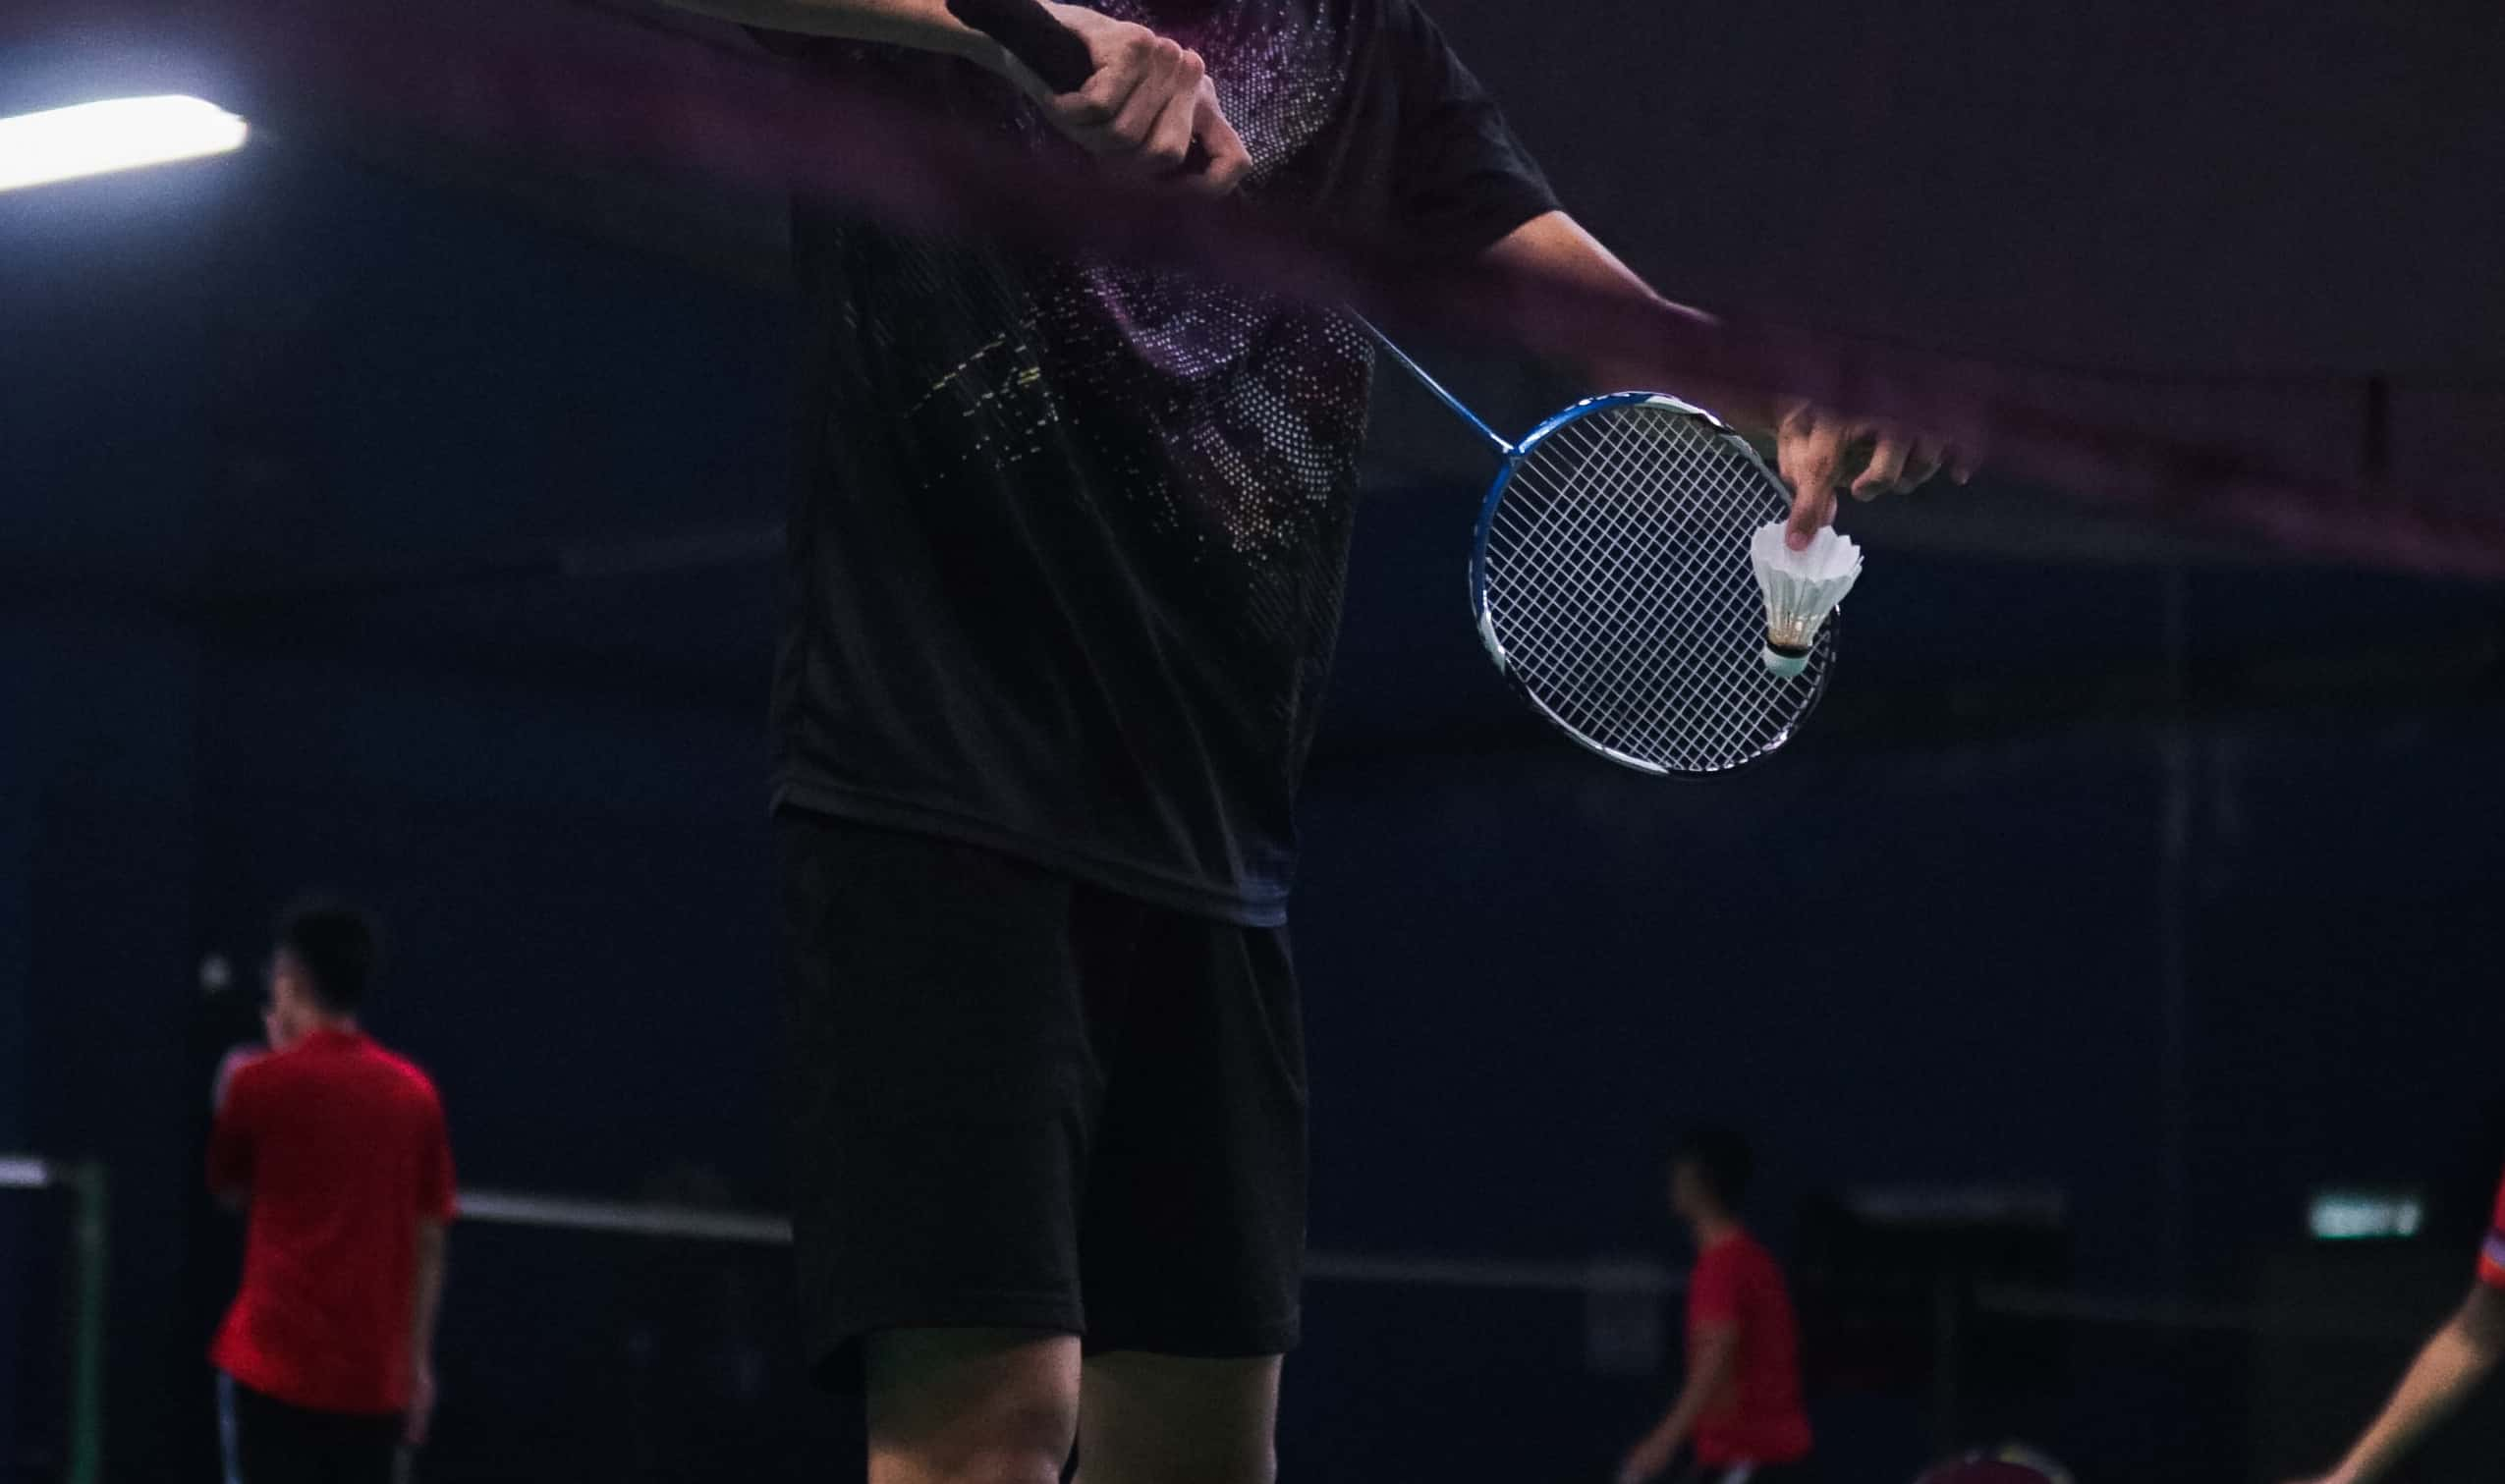 What do you wear to play Badminton